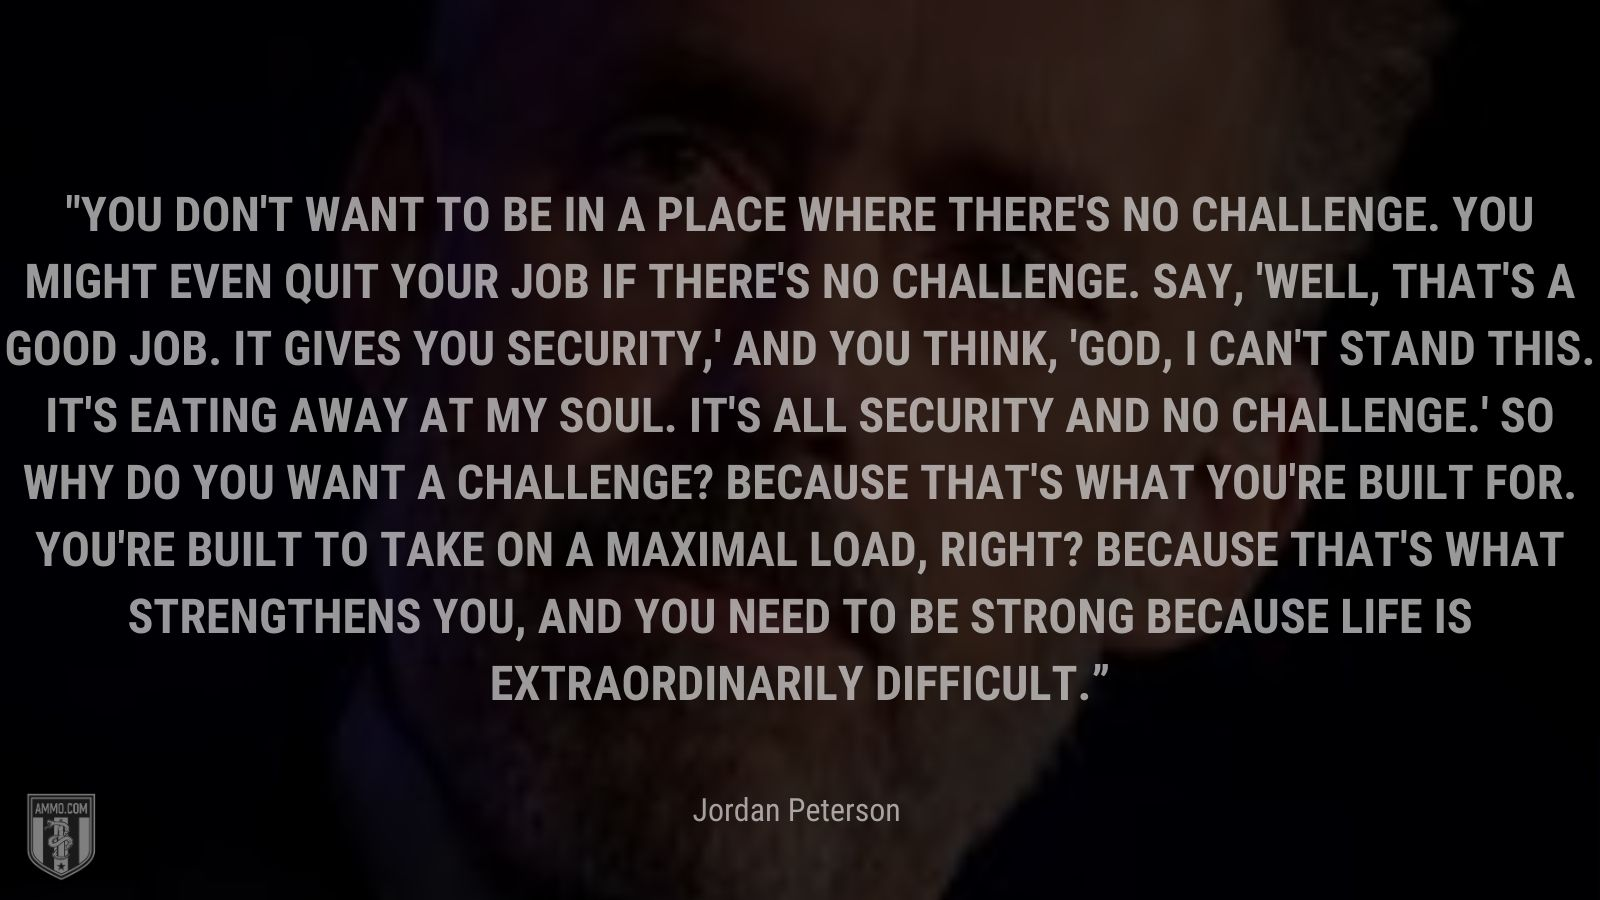 """""""You don't want to be in a place where there's no challenge. You might even quit your job if there's no challenge. Say, 'Well, that's a good job. It gives you security,' and you think, 'God, I can't stand this. It's eating away at my soul. It's all security and no challenge.' So why do you want a challenge? Because that's what you're built for.  You're built to take on a maximal load, right? Because that's what strengthens you, and you need to be strong because life is extraordinarily difficult."""" - Jordan Peterson"""